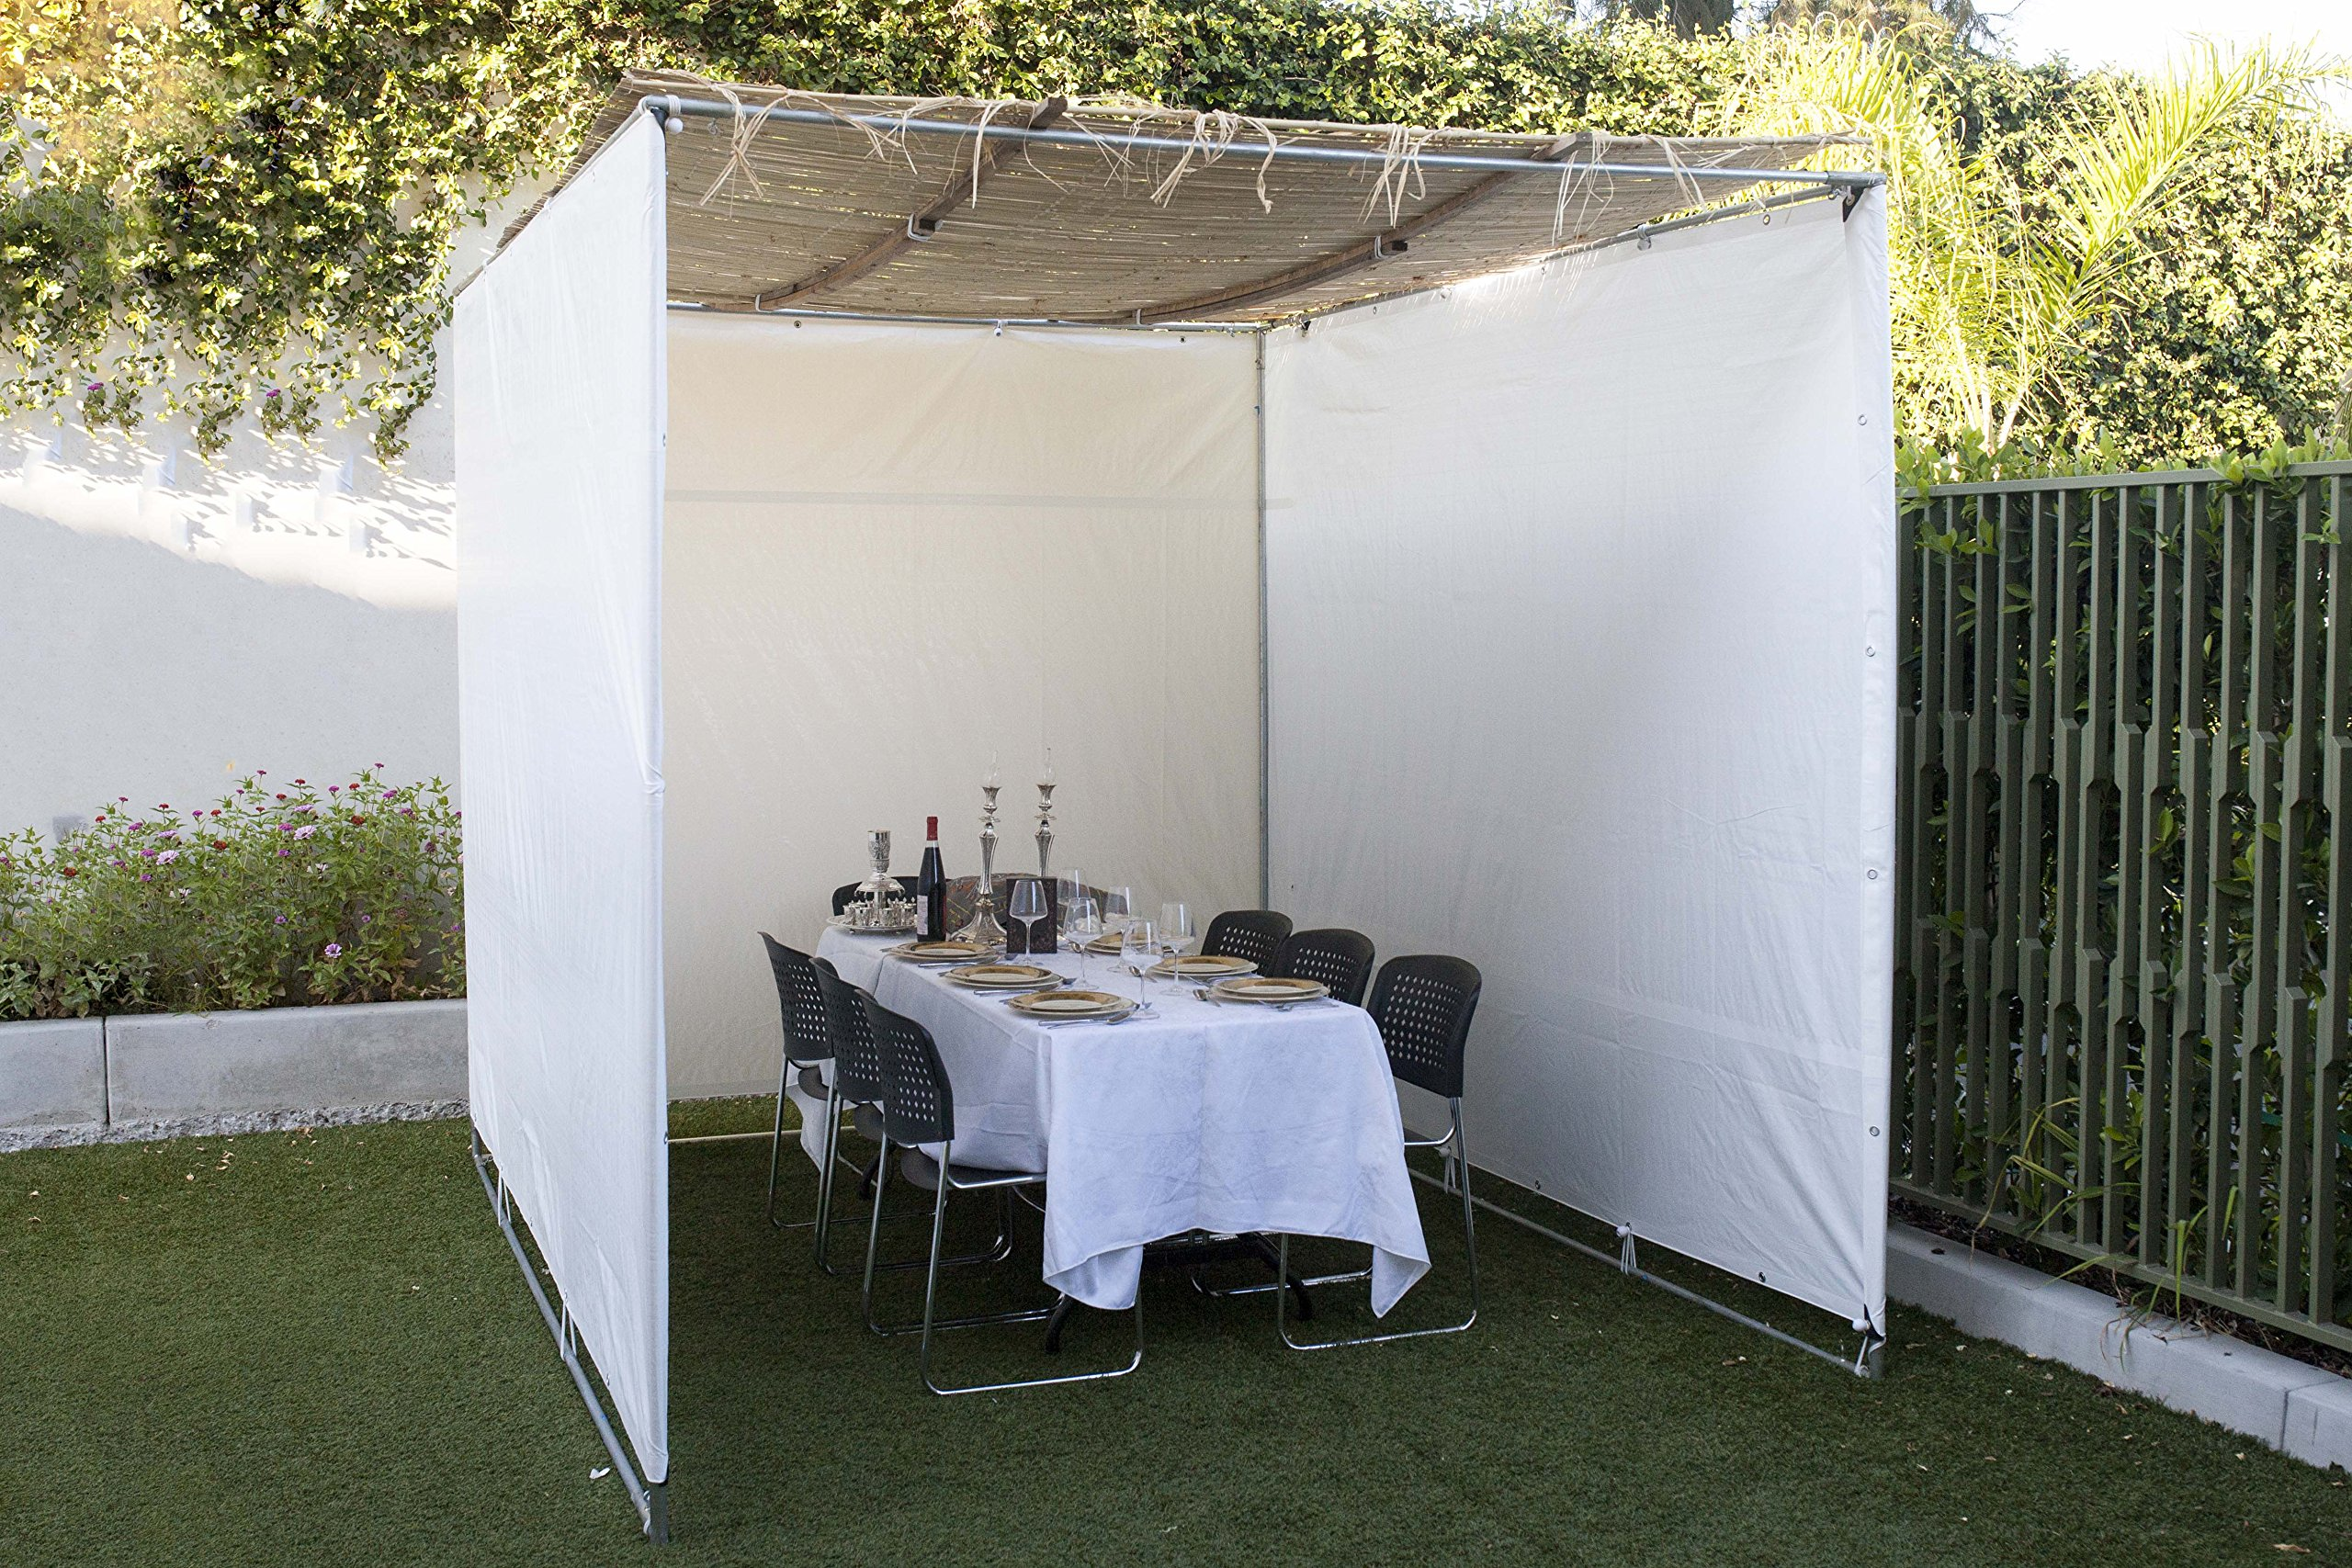 TheSukkahSpot - Easy to Build Sukkah Succah Sukah - Certified Kosher - (8X10) by TheSukkahSpot